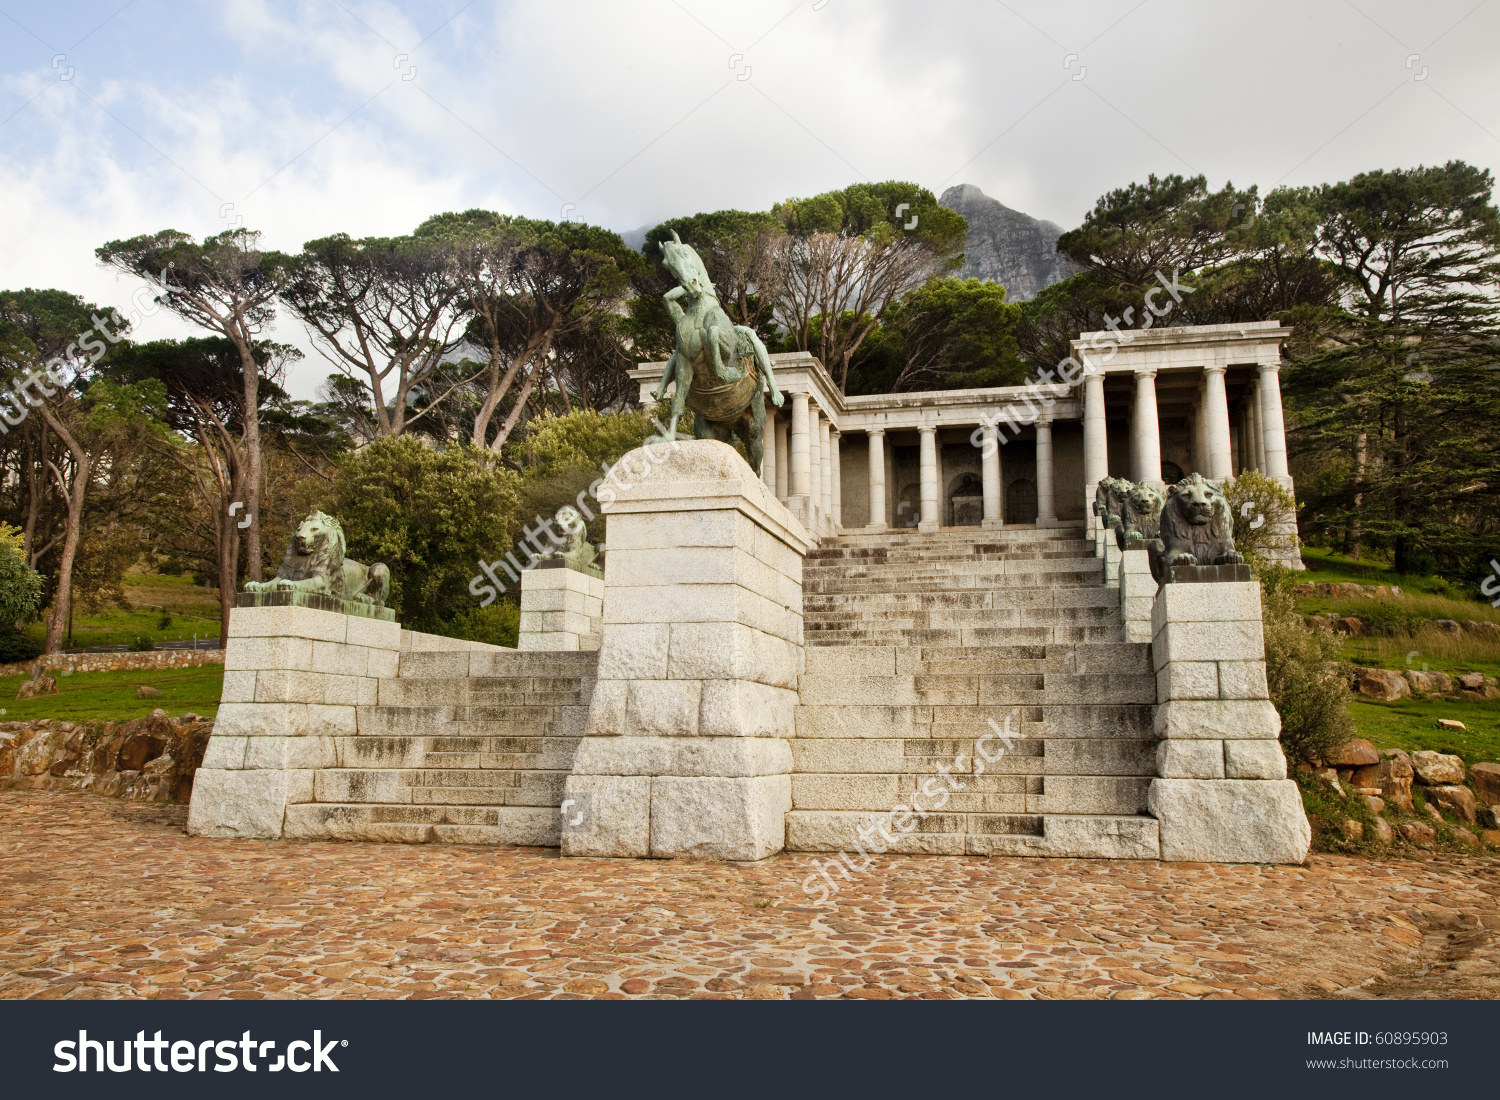 The Rhodes Memorial Monument In Cape Town, South Africa, On Table.